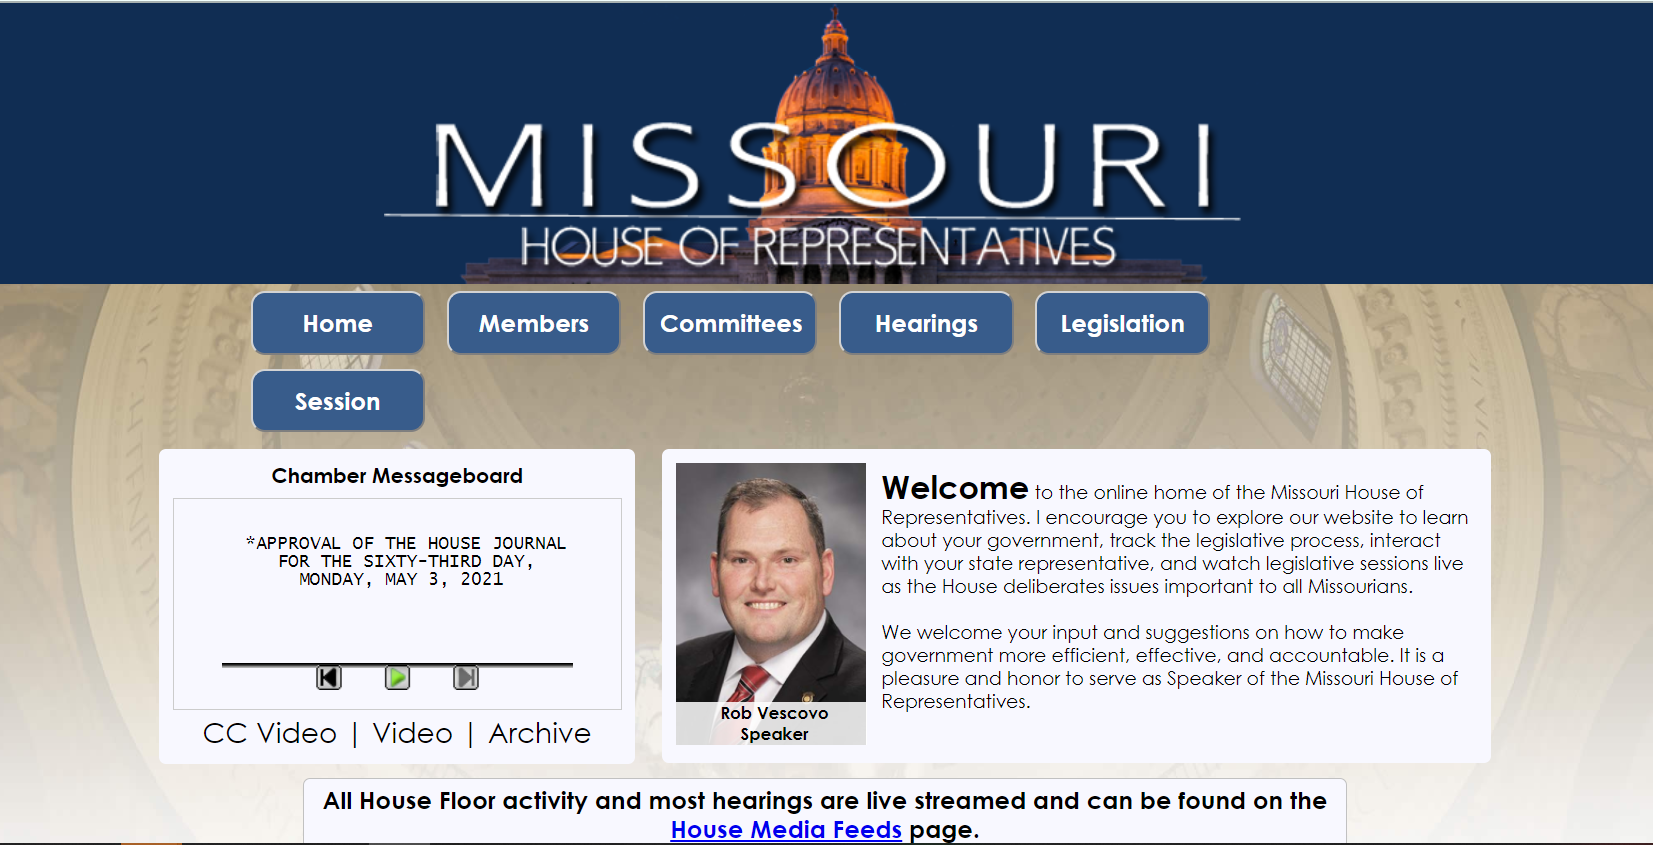 image of the House of Representatives website